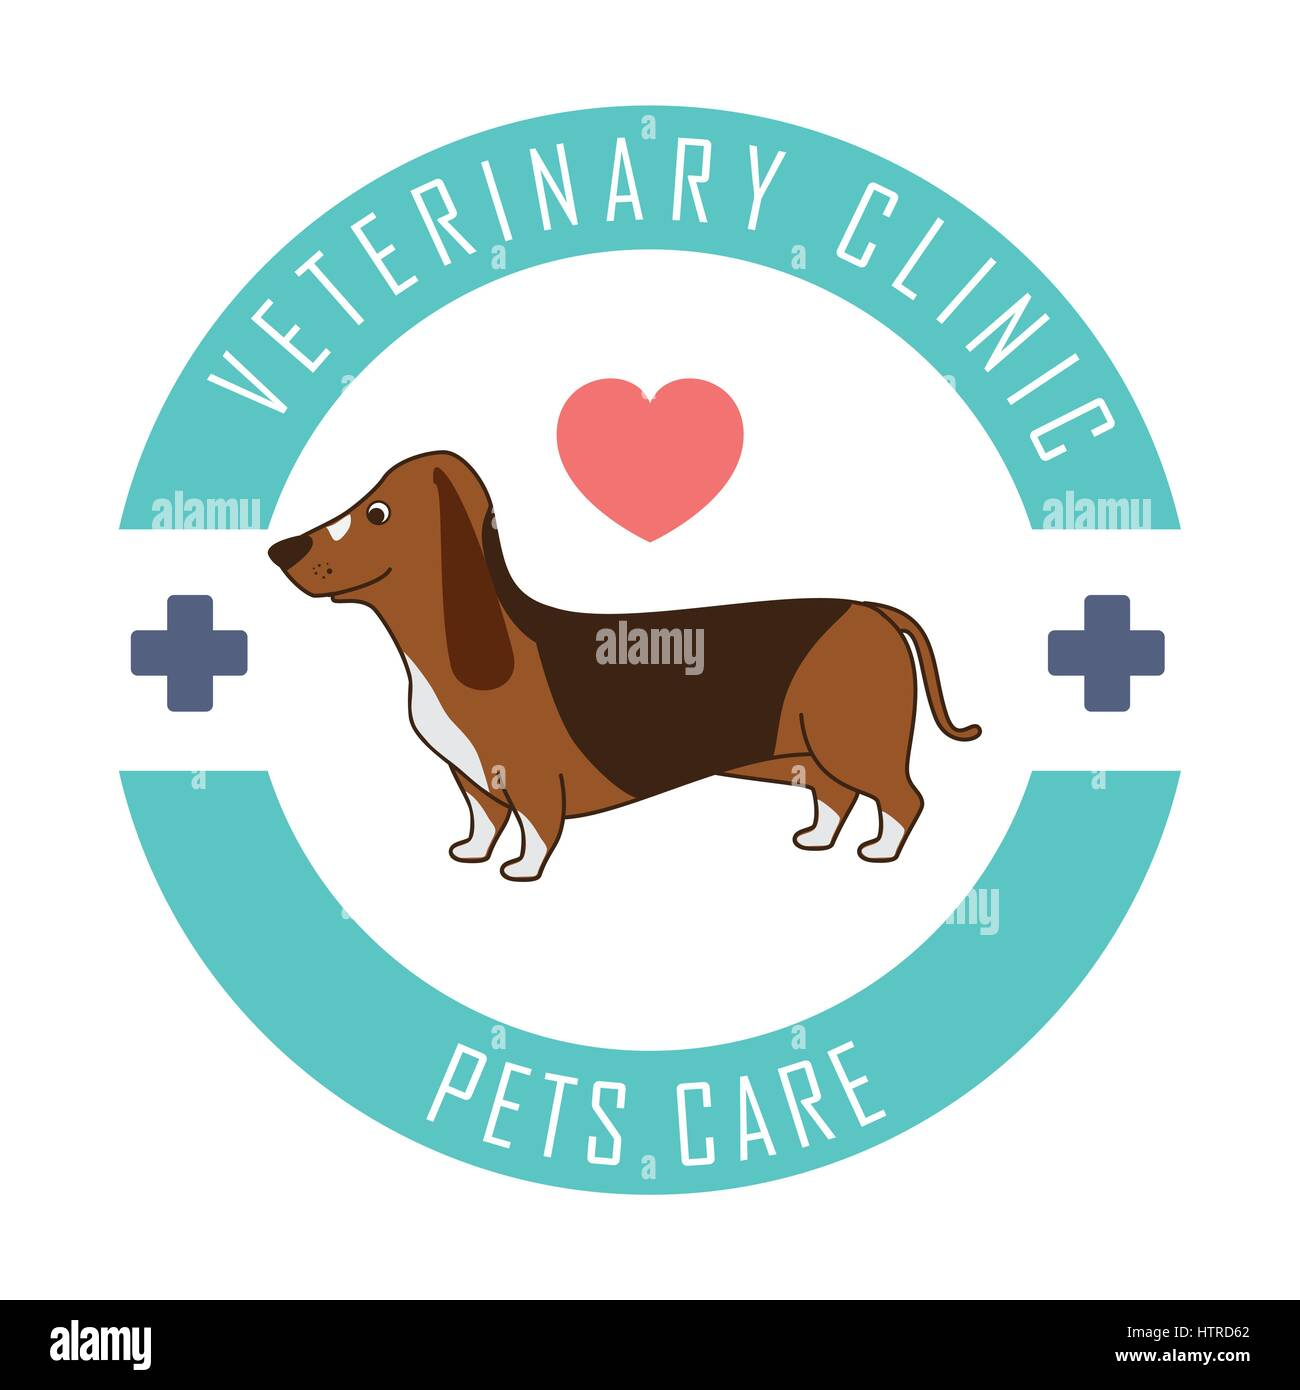 Veterinary clinic healthcare - Stock Image